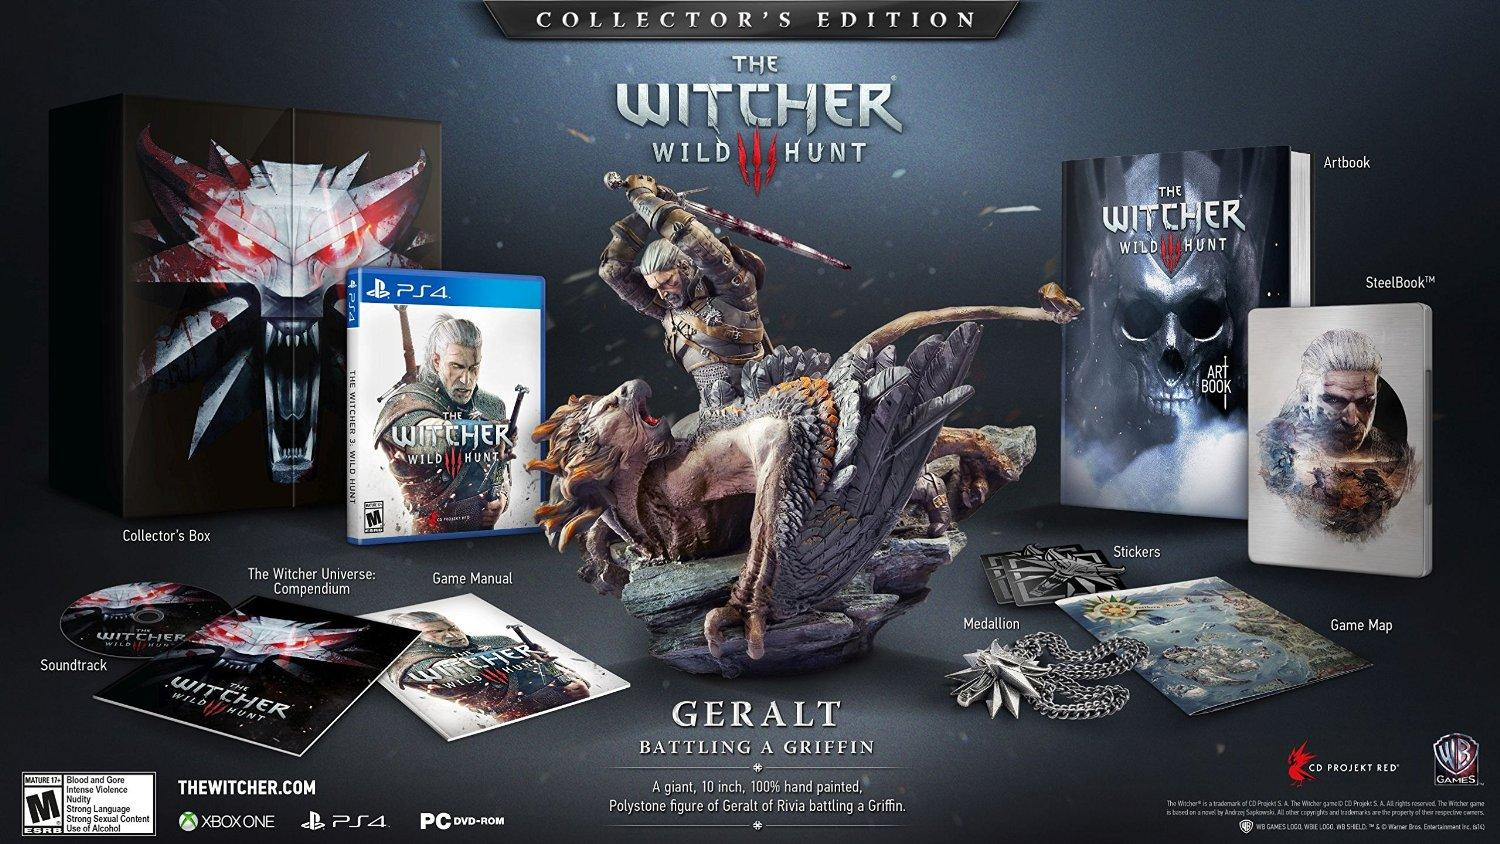 Pre Order $149.99 The Witcher: Wild Hunt Collector's Edition - PlayStation 4